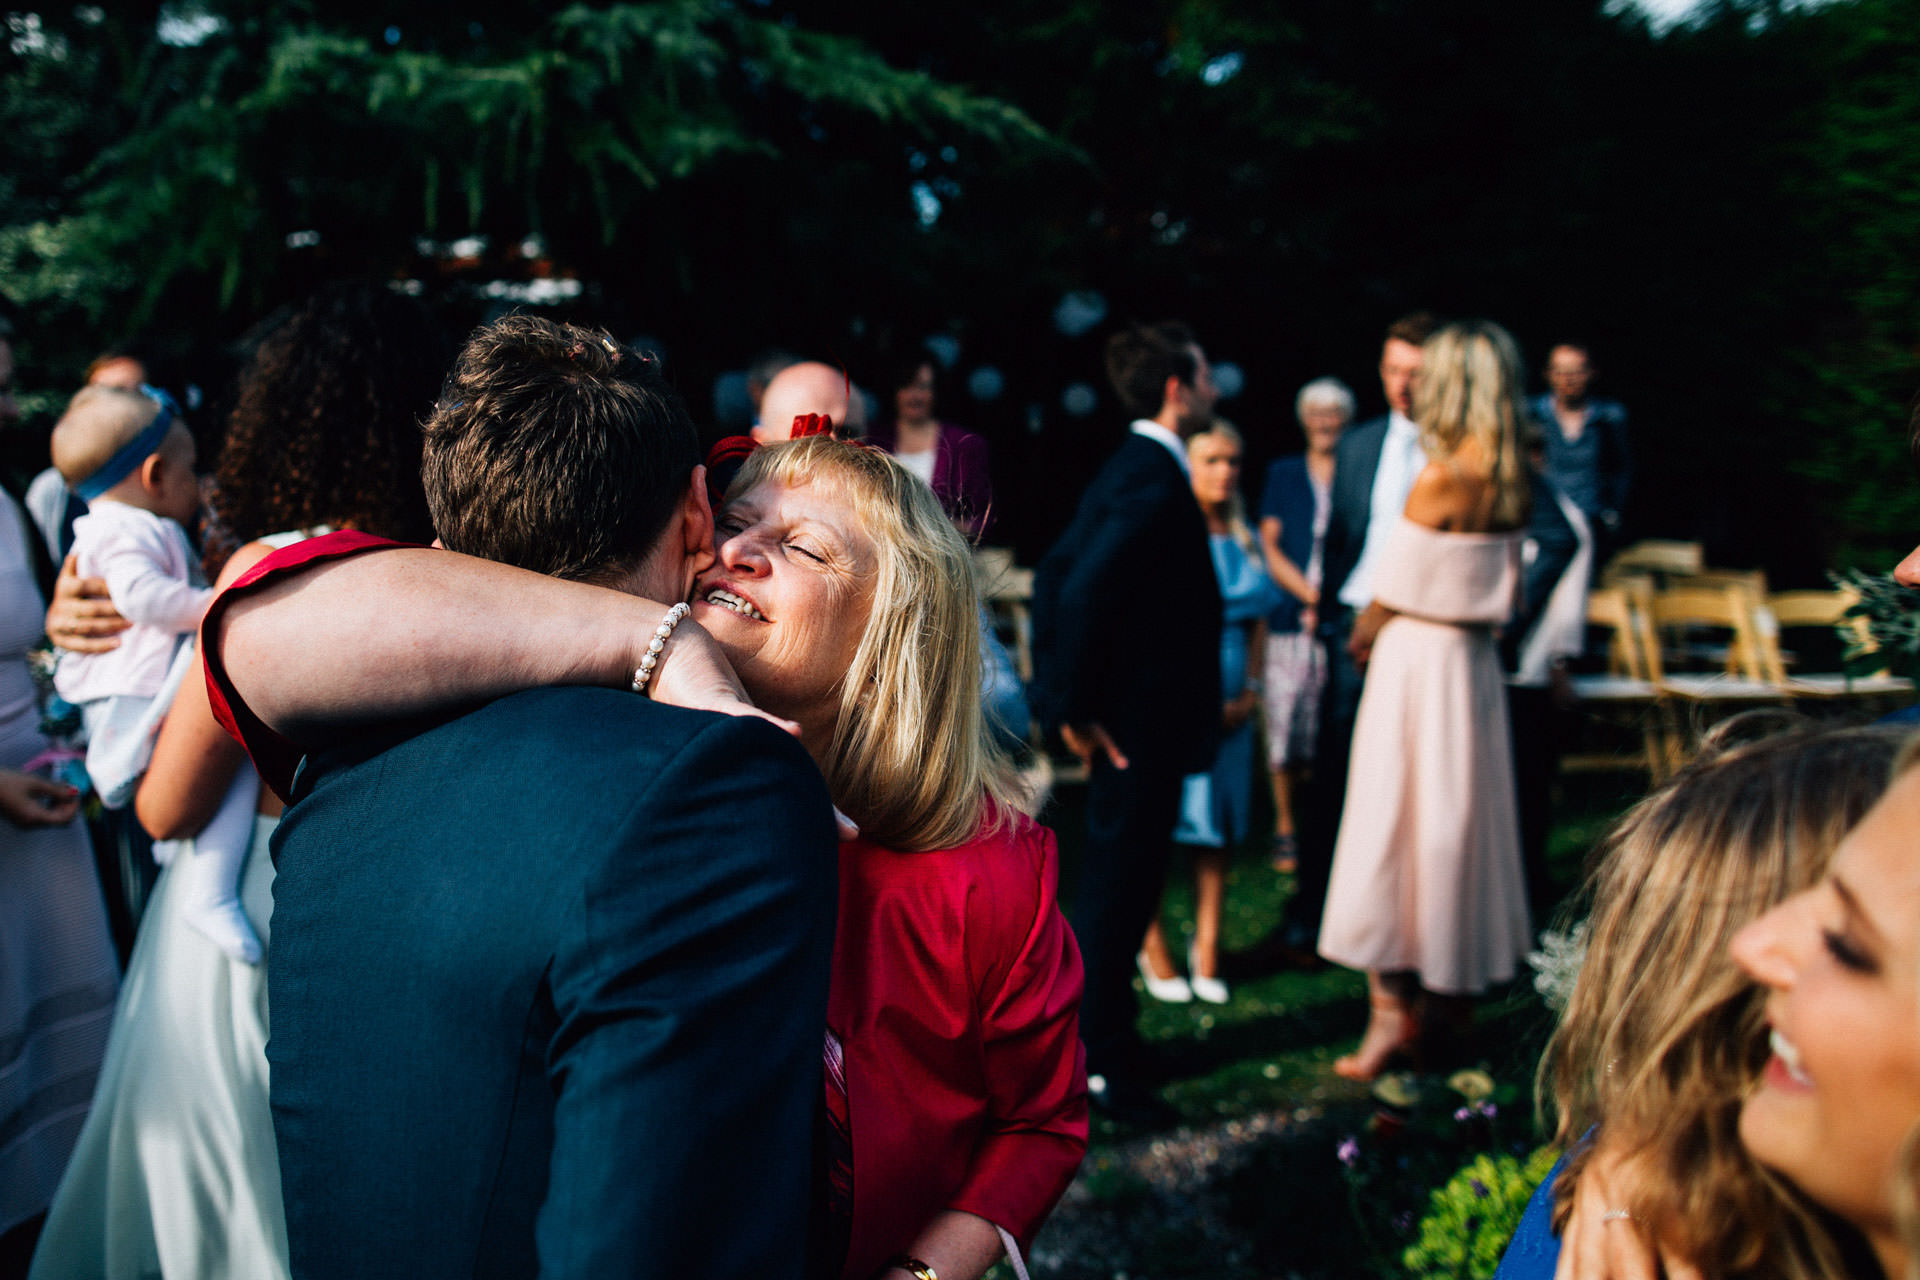 Best wedding photography 2016 - hugging guests